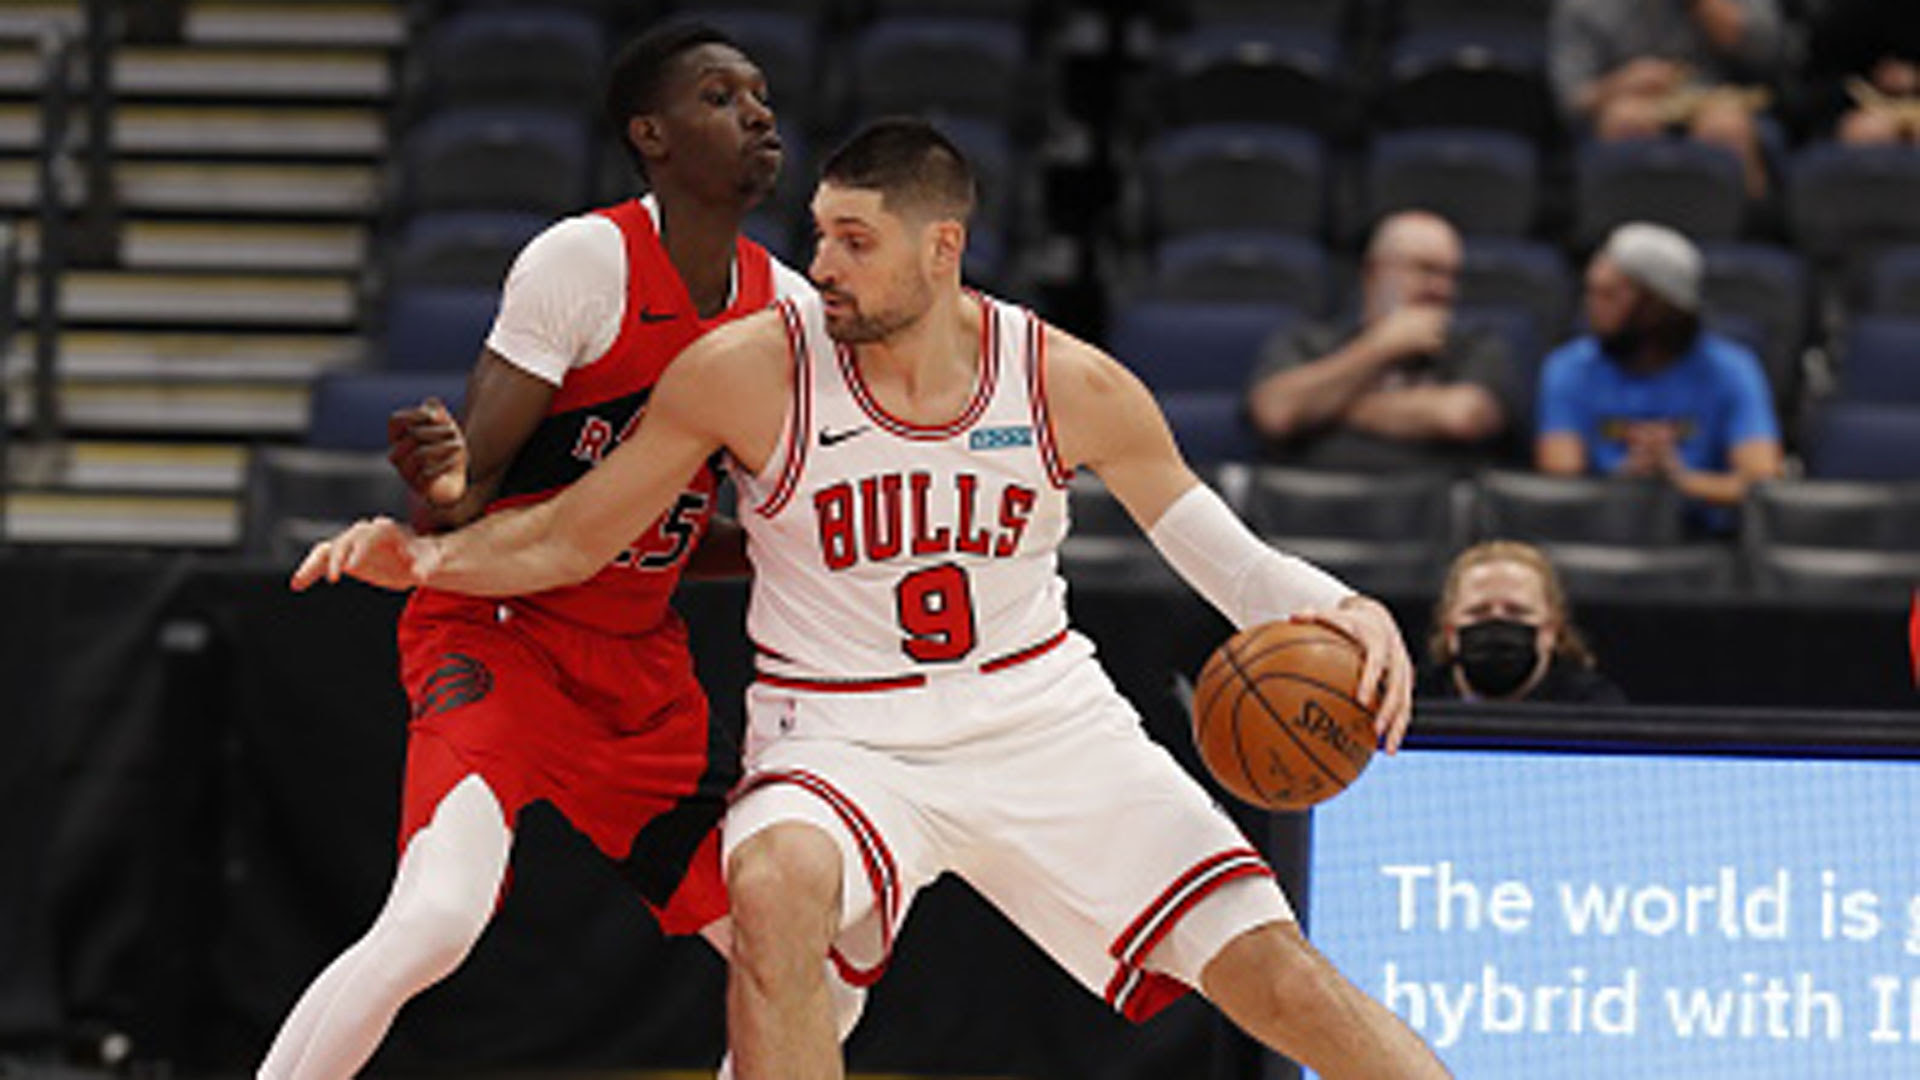 Boucher drops career-high 38 points, but short-handed Raps fall to Bulls